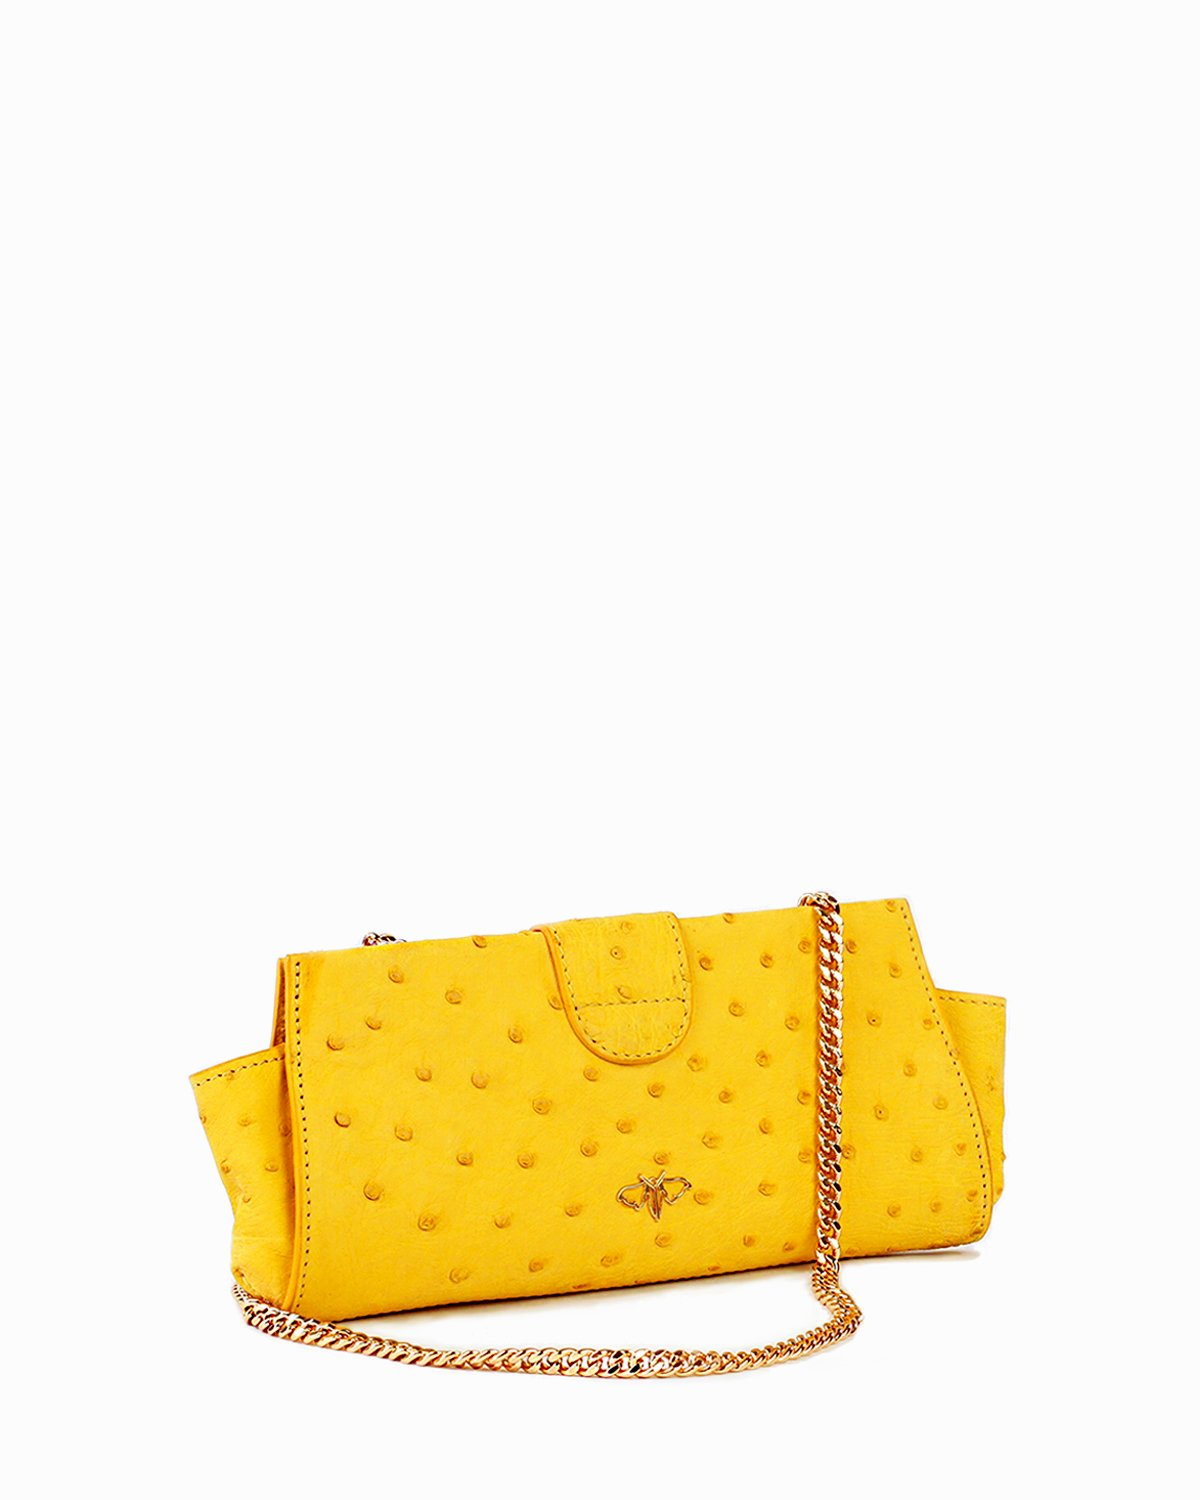 Genuine Ostrich Bag Clutch Small Yellow Back Angle View with Gold Shoulder Chain